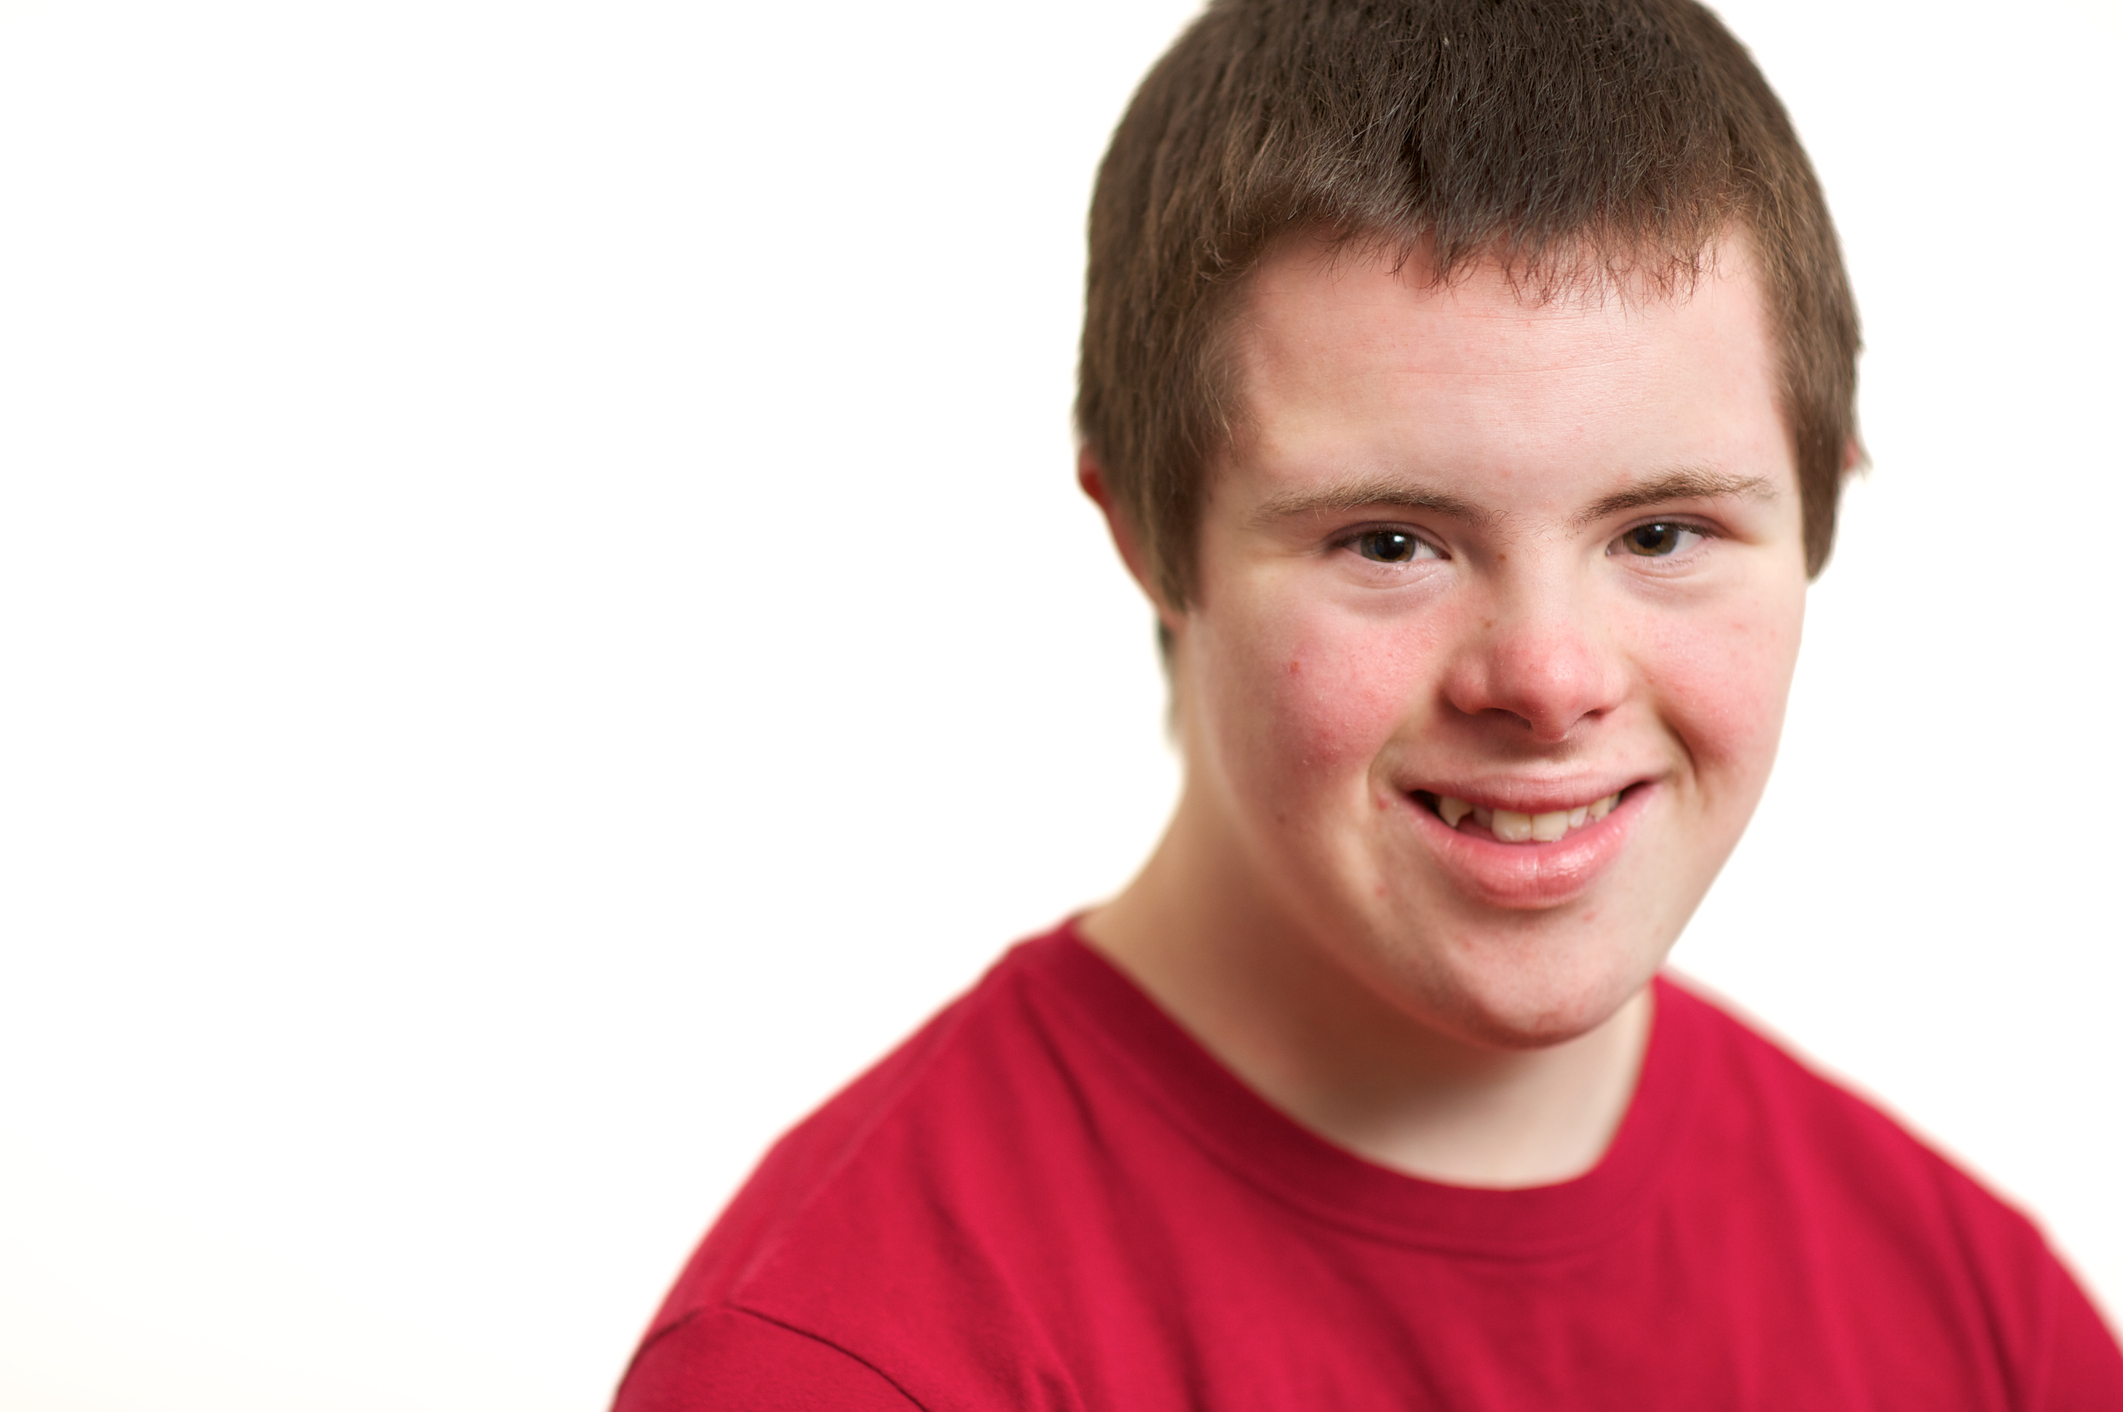 Fifteen-year-old Boy smiling